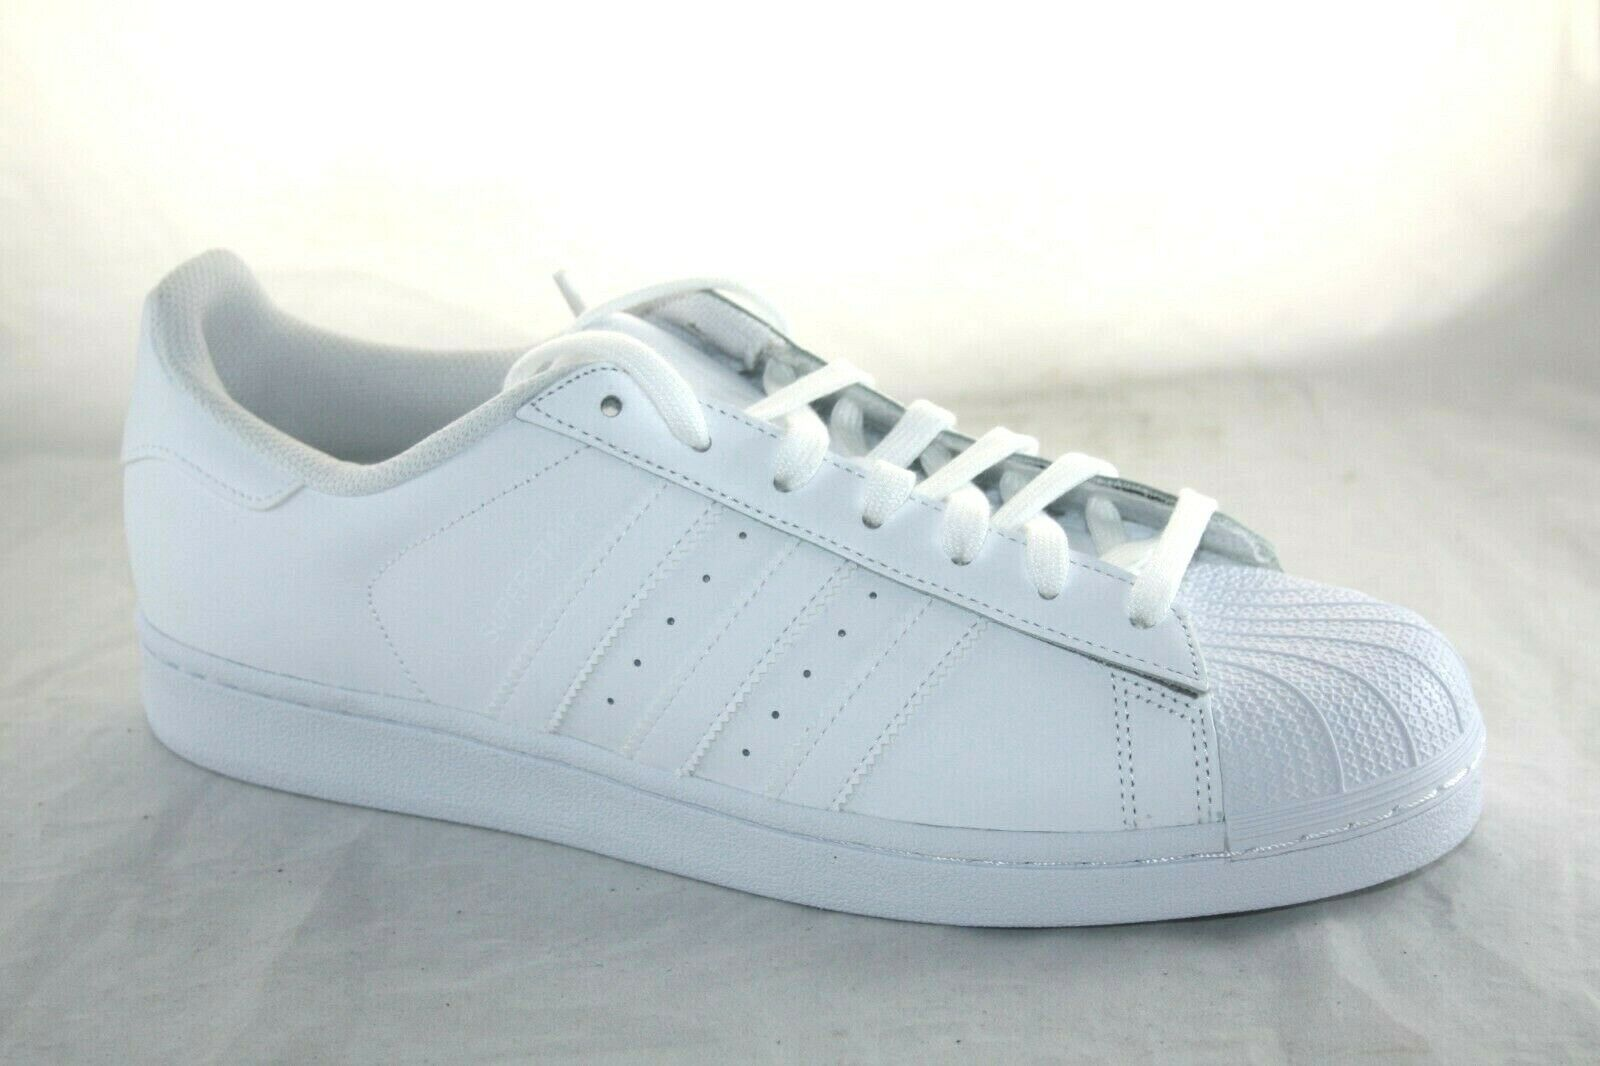 MEN'S ADIDAS SUPERSTAR FOUNDATION TRIPLE WHITE MSRP   80.00